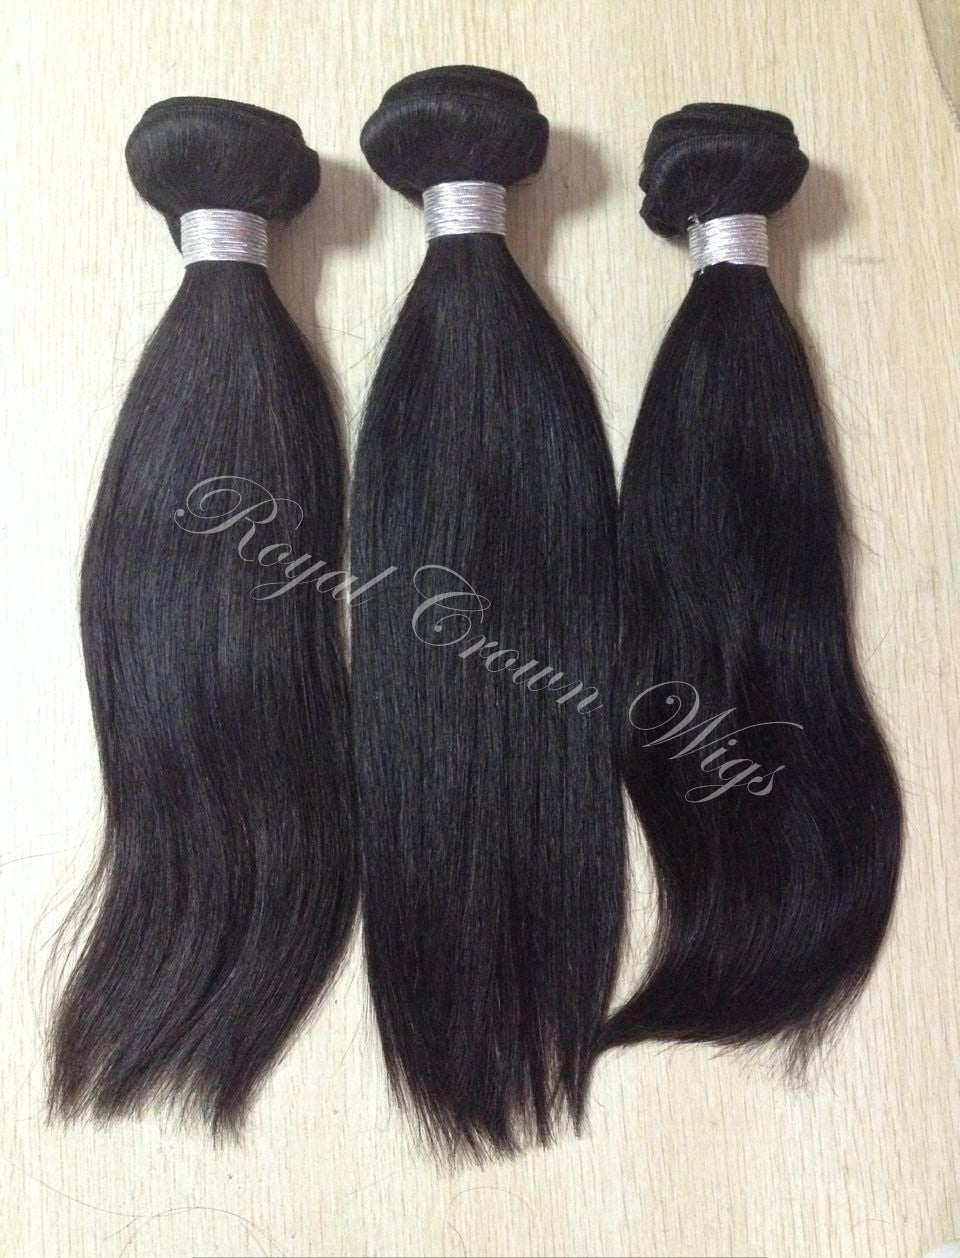 Yaki Human Hair Weft, Natural Color Weft Hair Extension, Royal Crown Wigs